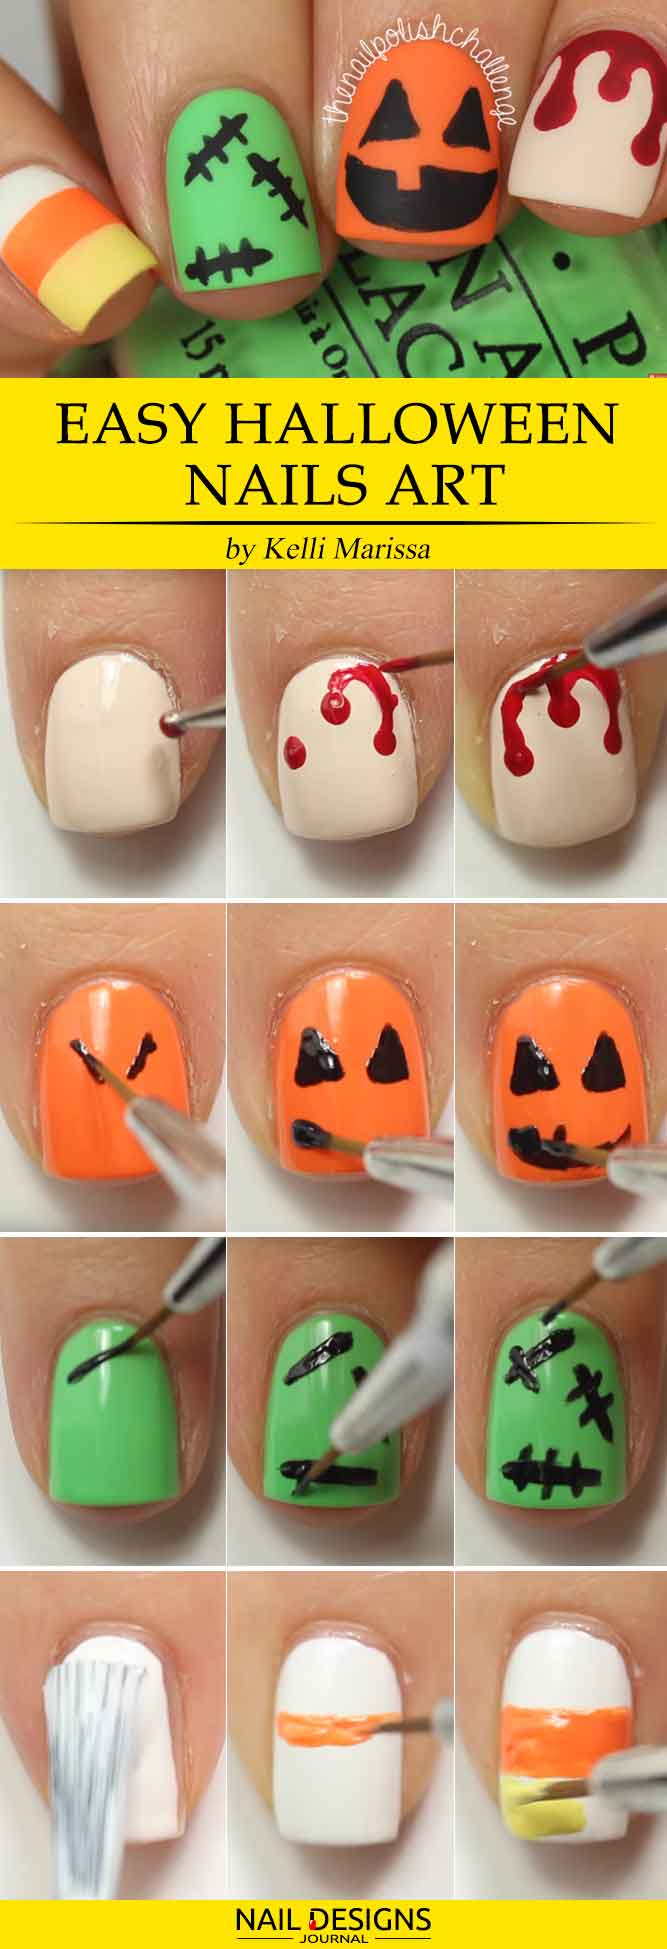 Easy Nails Art